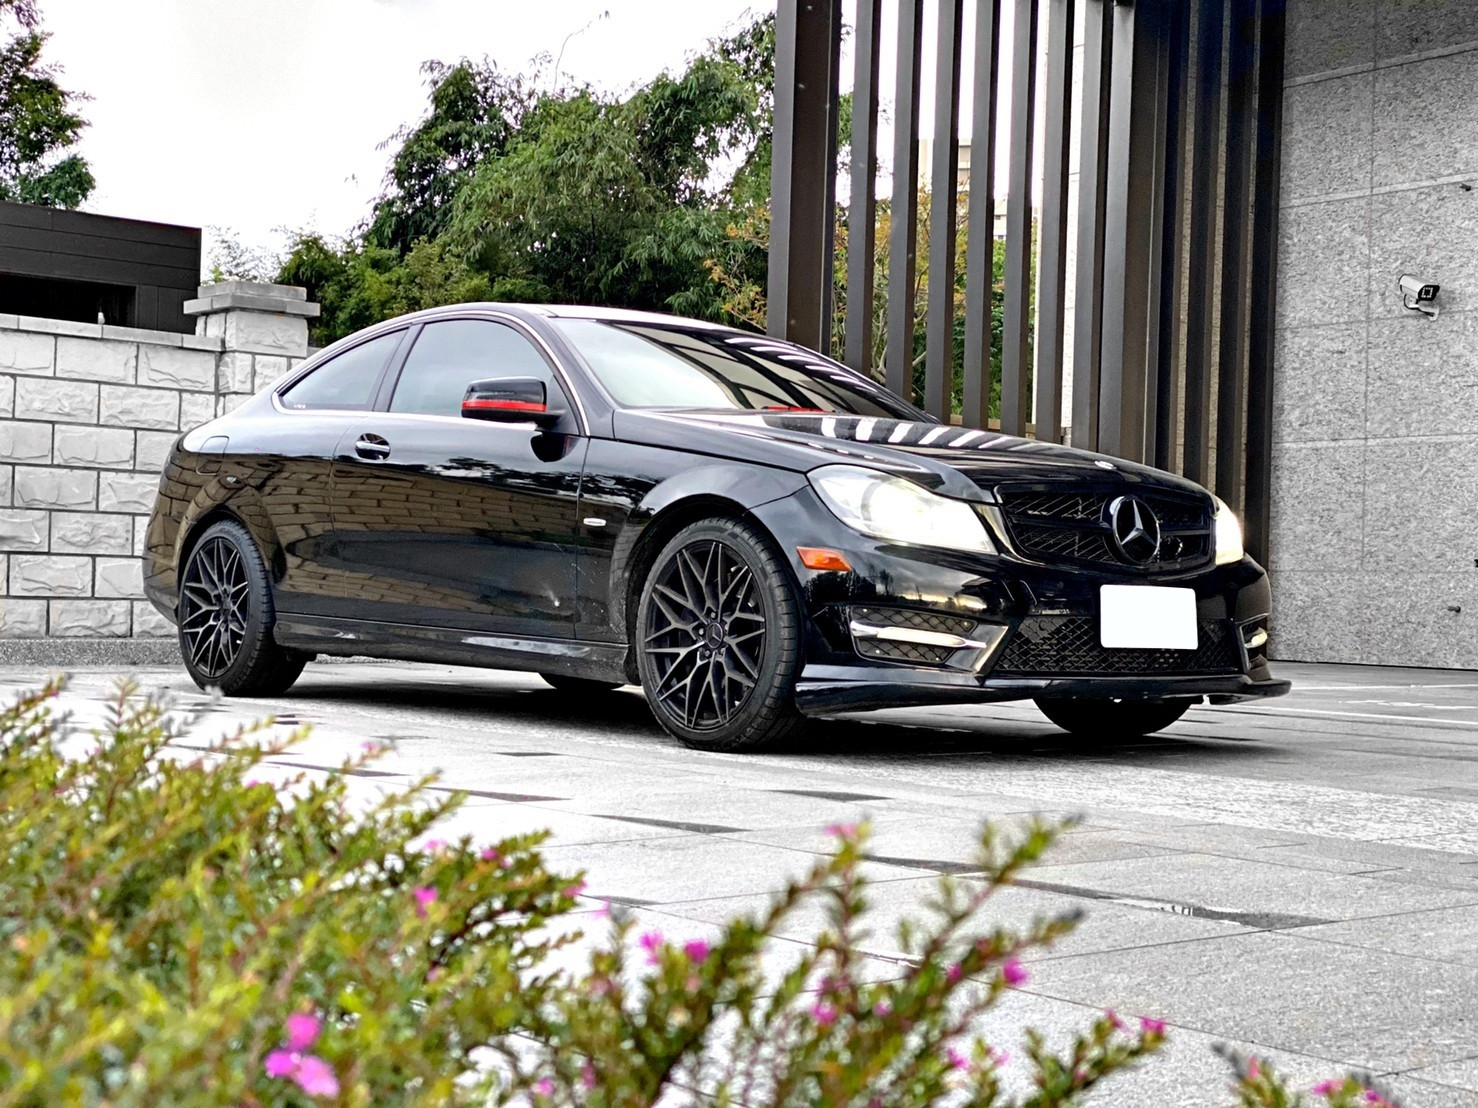 2012 c250 coupe_210906_2